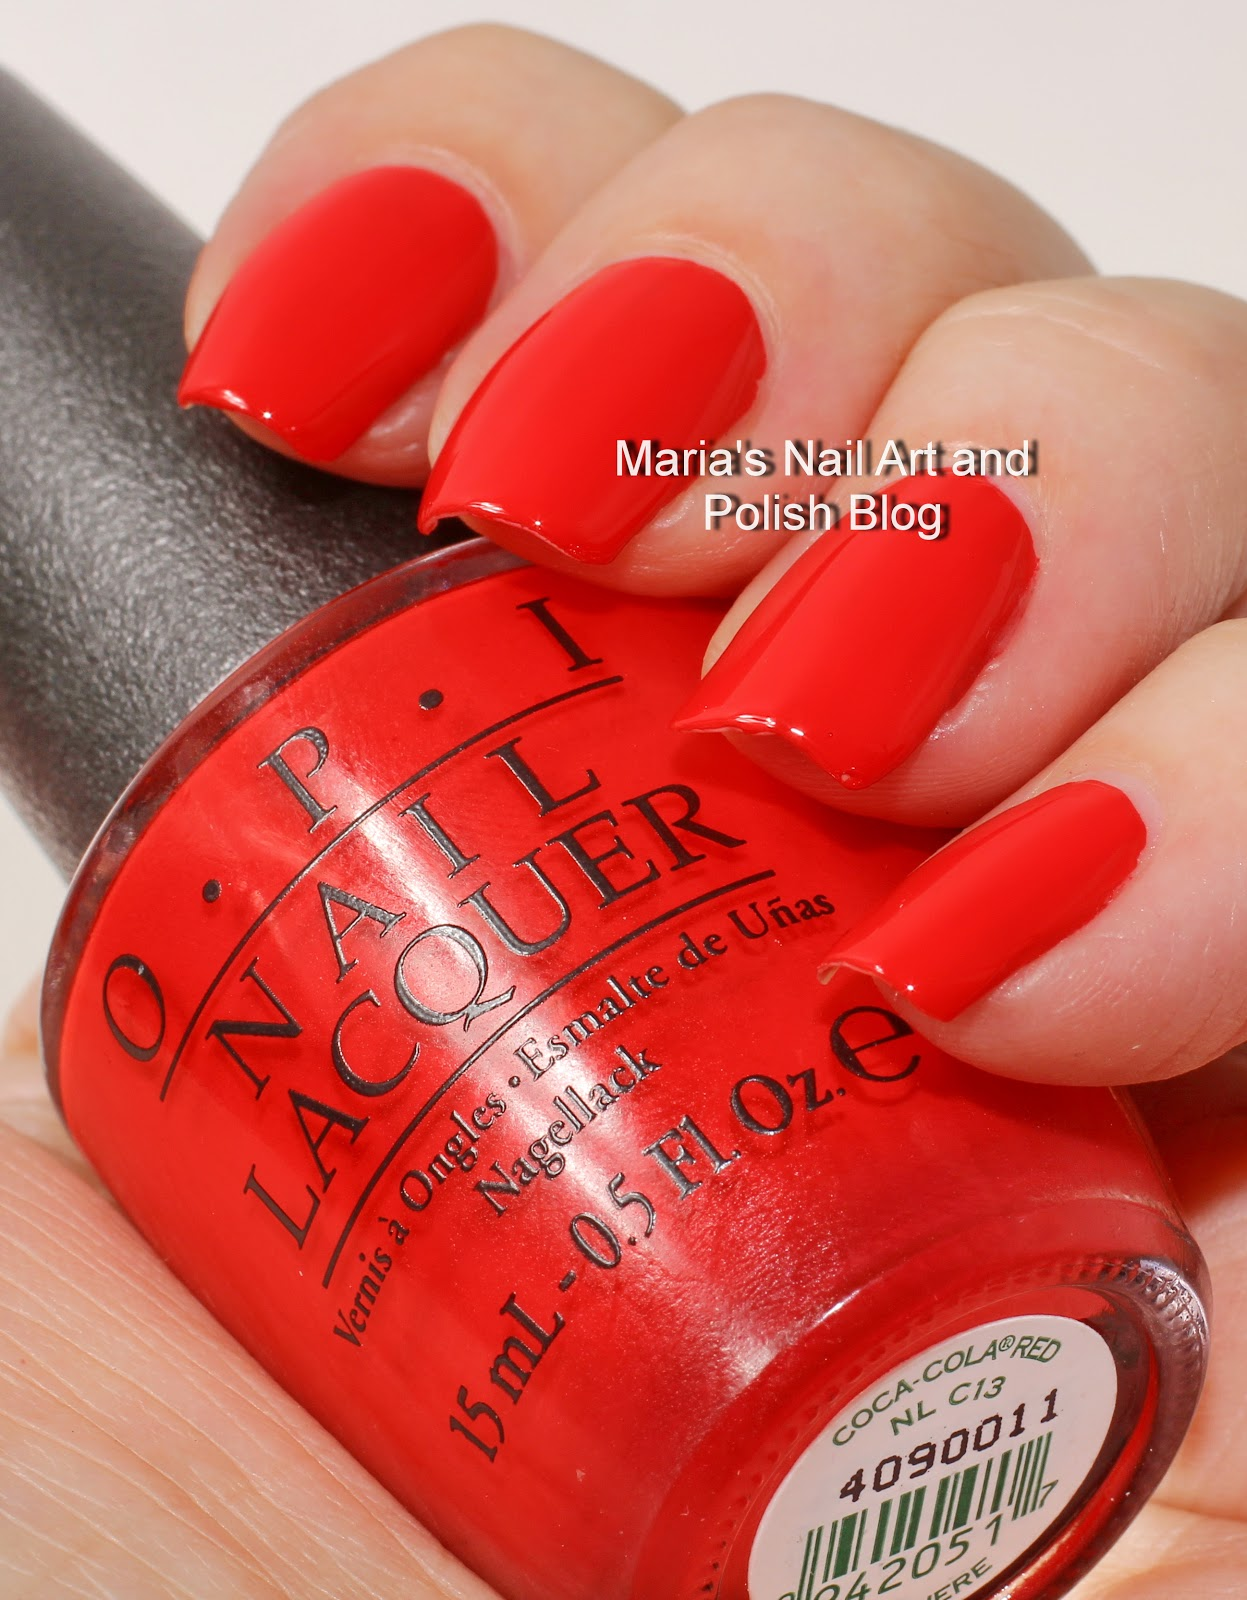 Opi Coca Cola Nail Polish Collection Partial: Marias Nail Art And Polish Blog: OPI Coca Cocla Collection